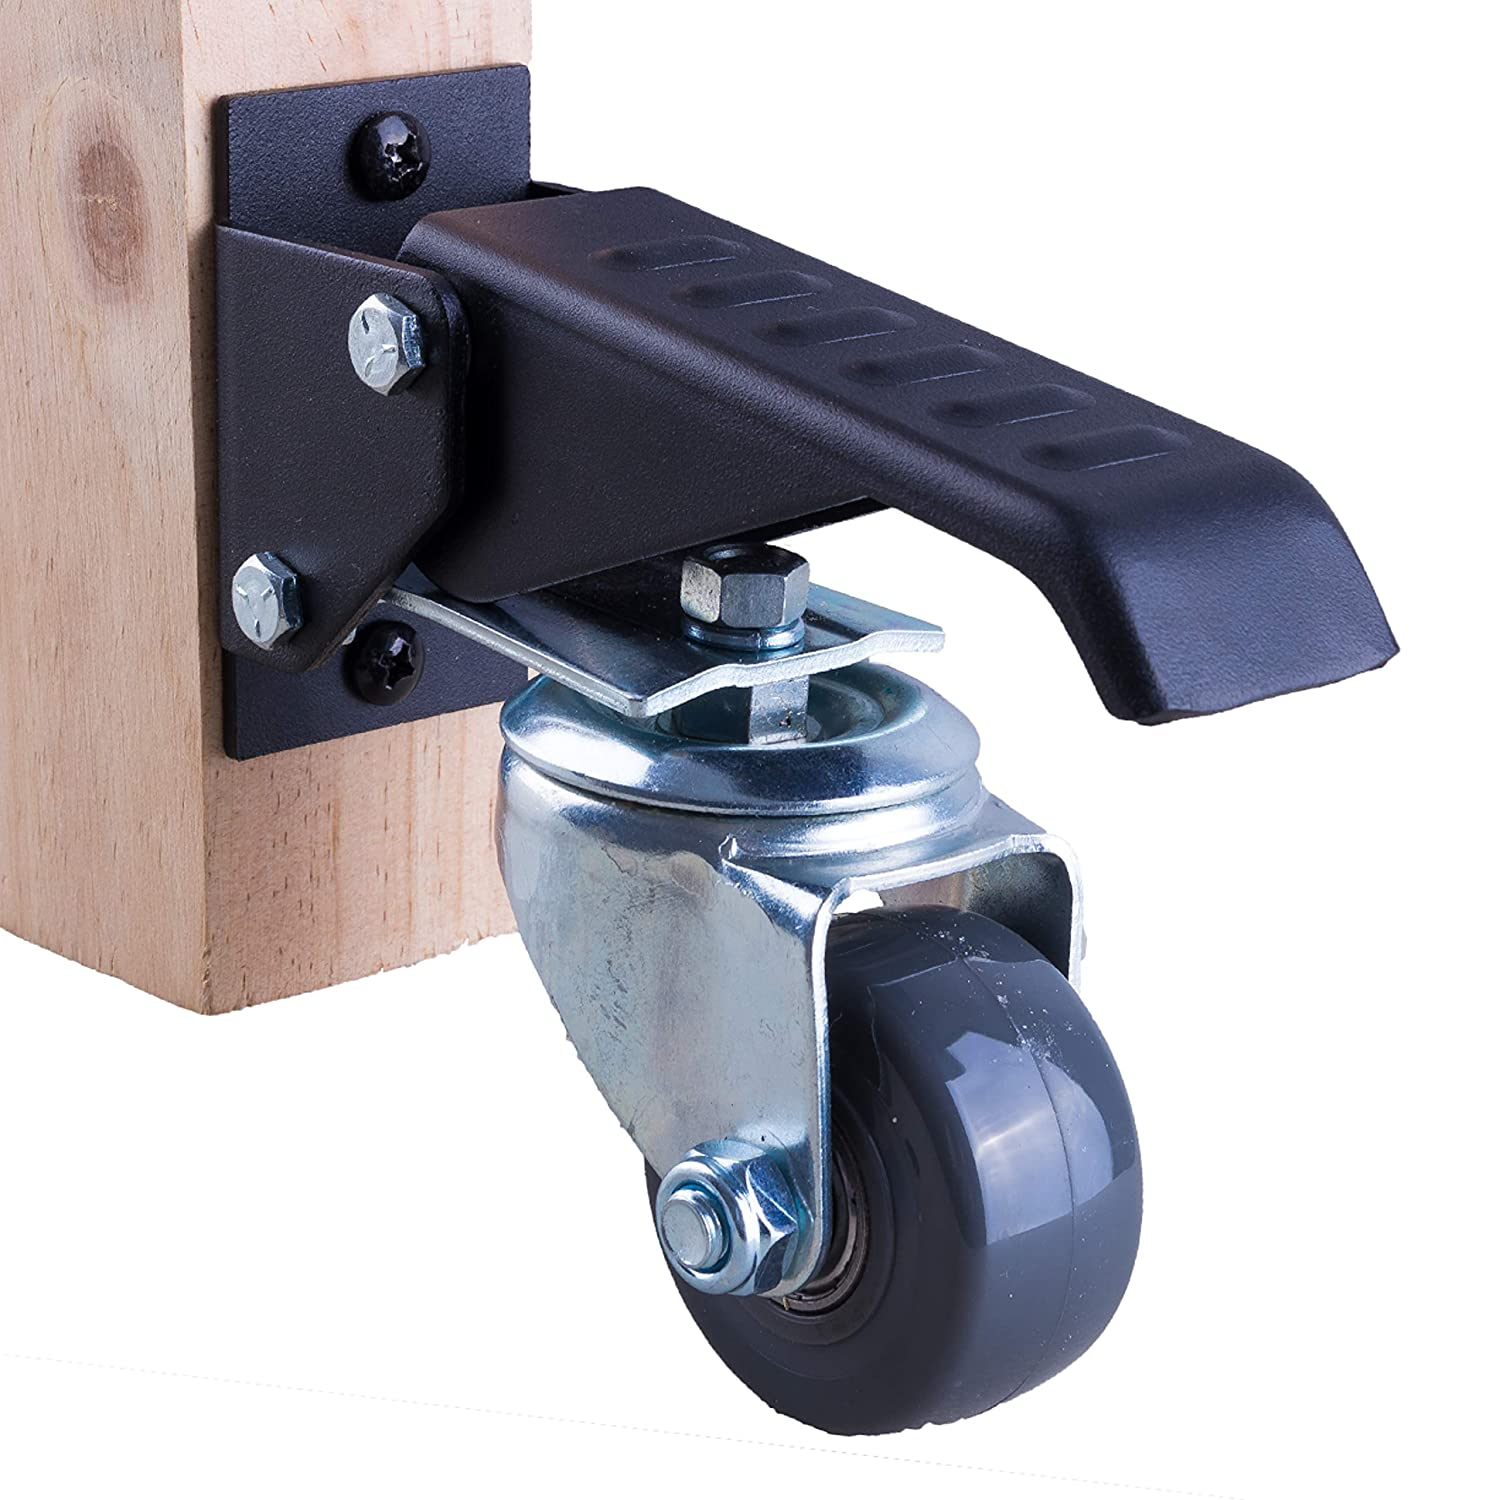 Workbench Casters - 4 Extra Heavy Duty Retractable casters, 840 lbs. Weight Capacity, Urethane Wheels: Industrial & Scientific